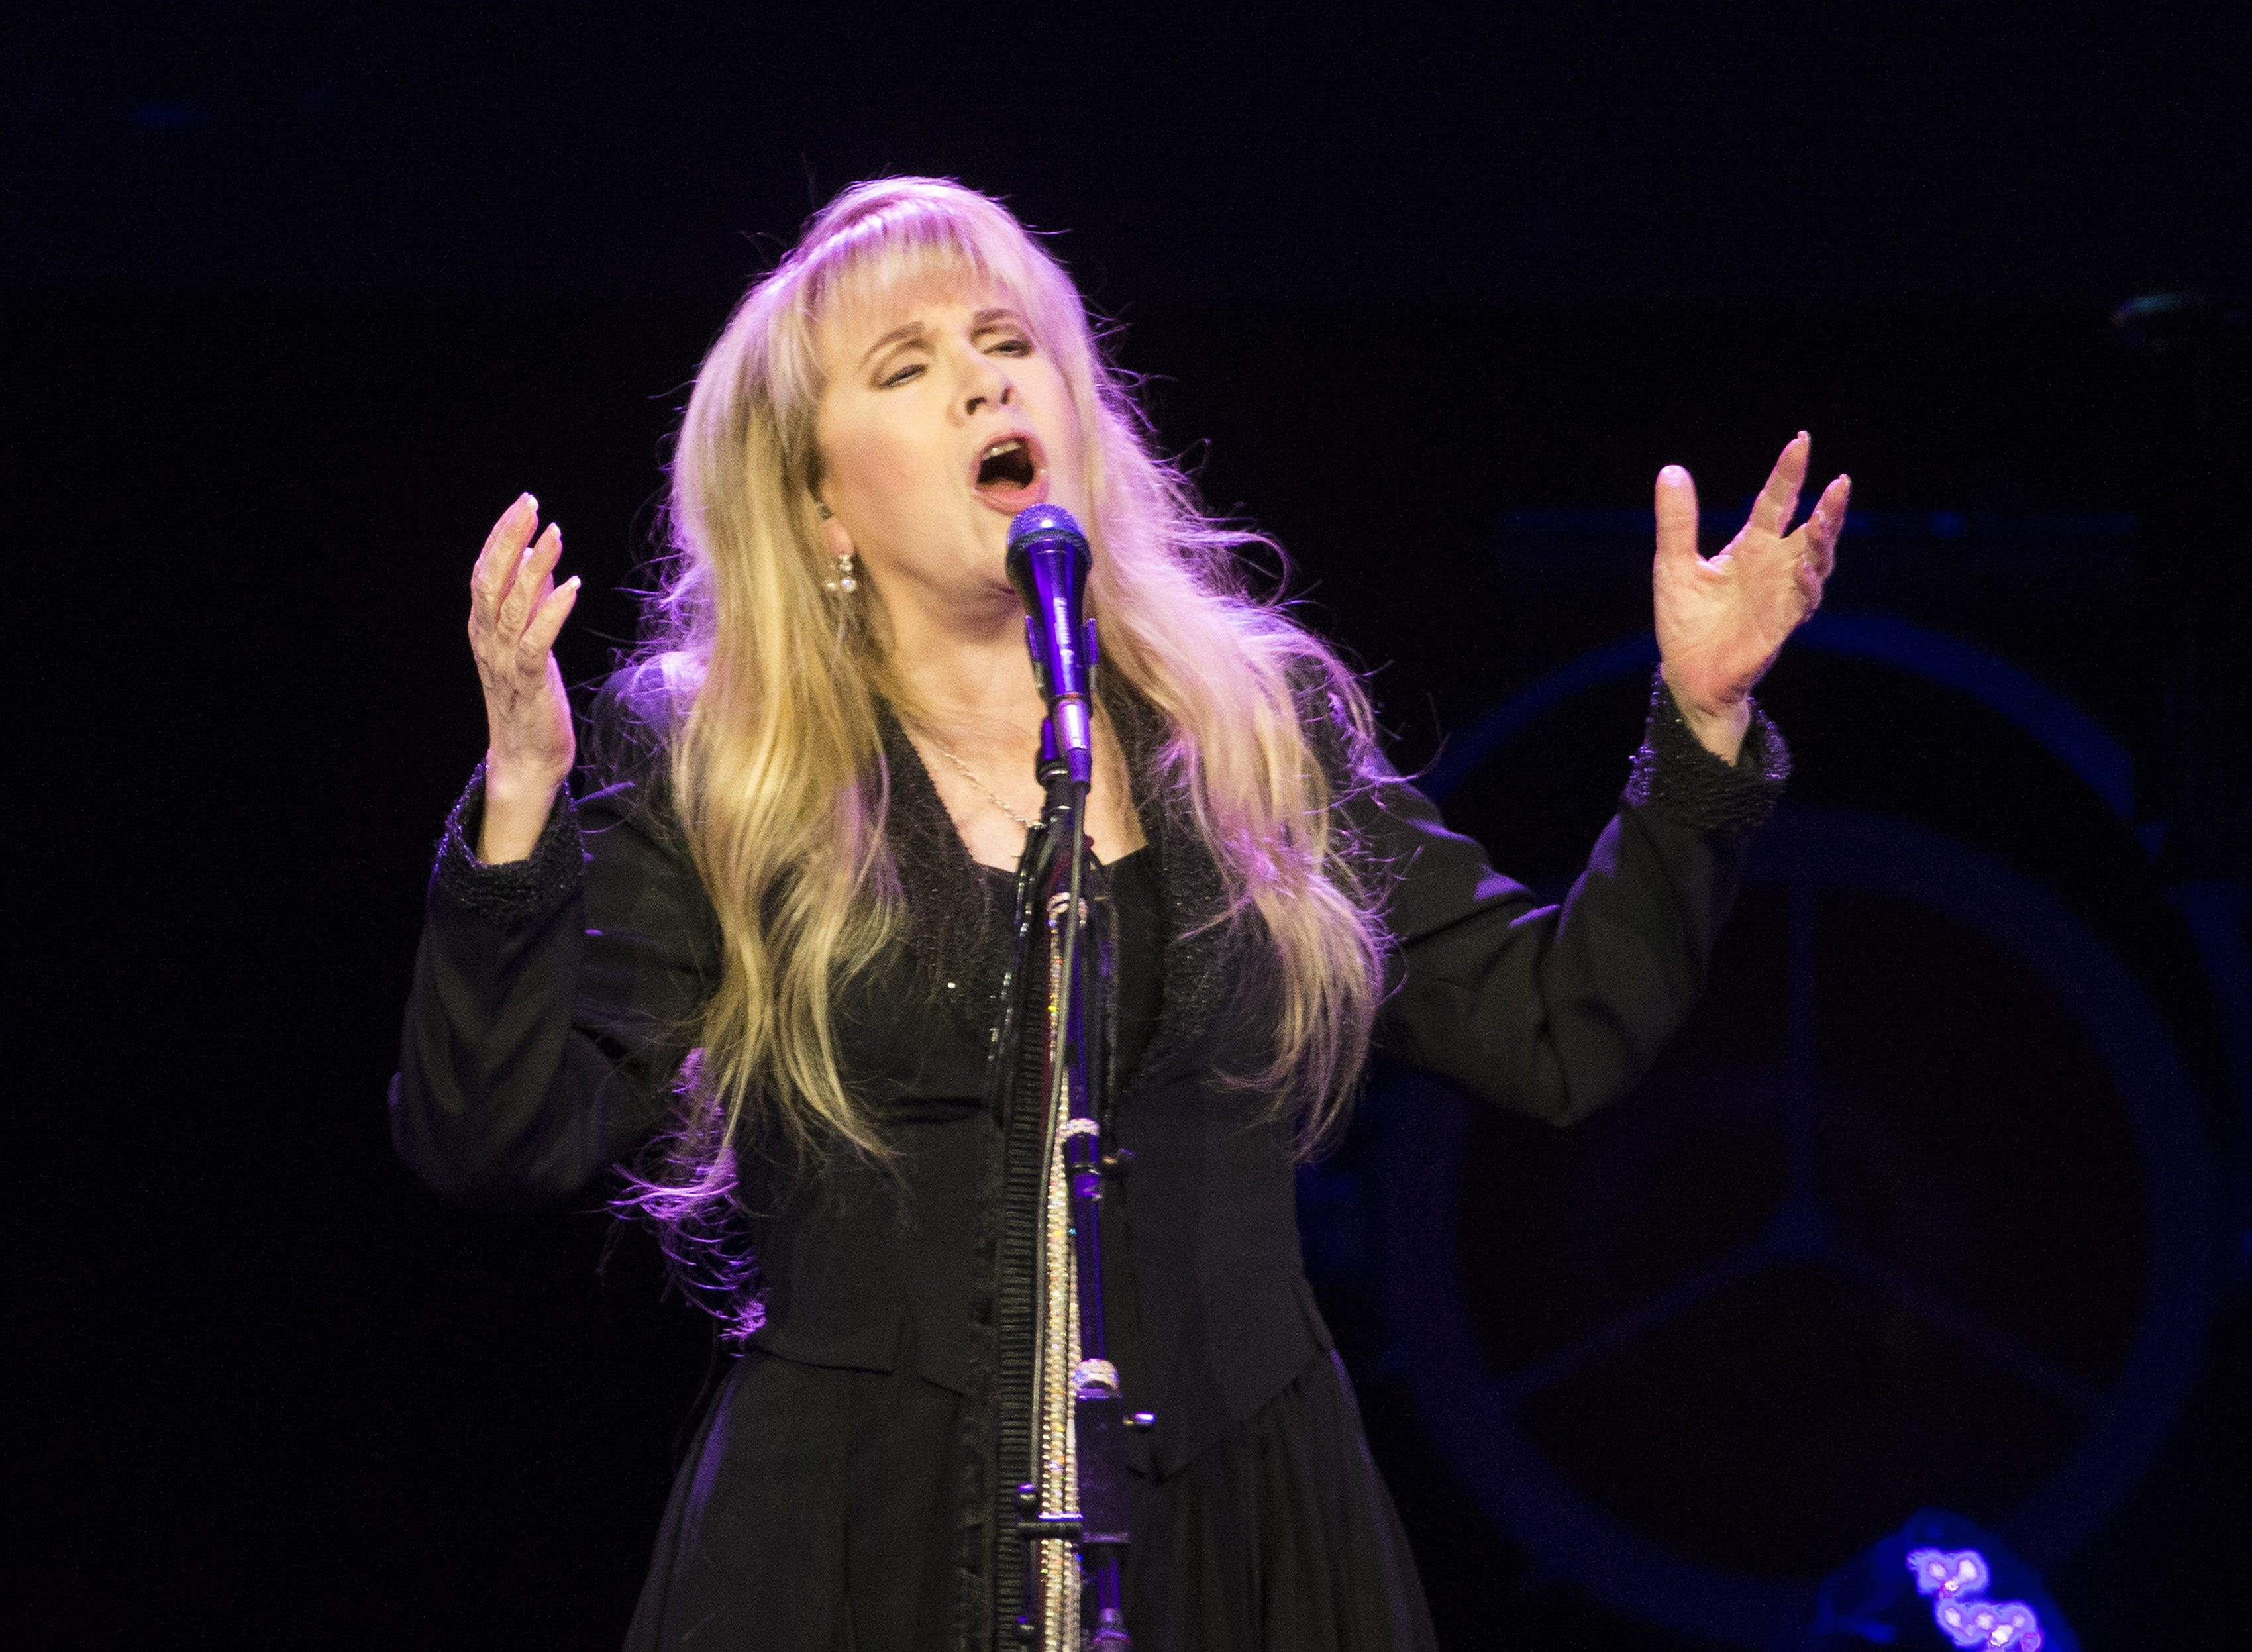 Could Stevie Nicks edge out Def Leppard to win the Rock and Roll Hall of Fame fan vote?